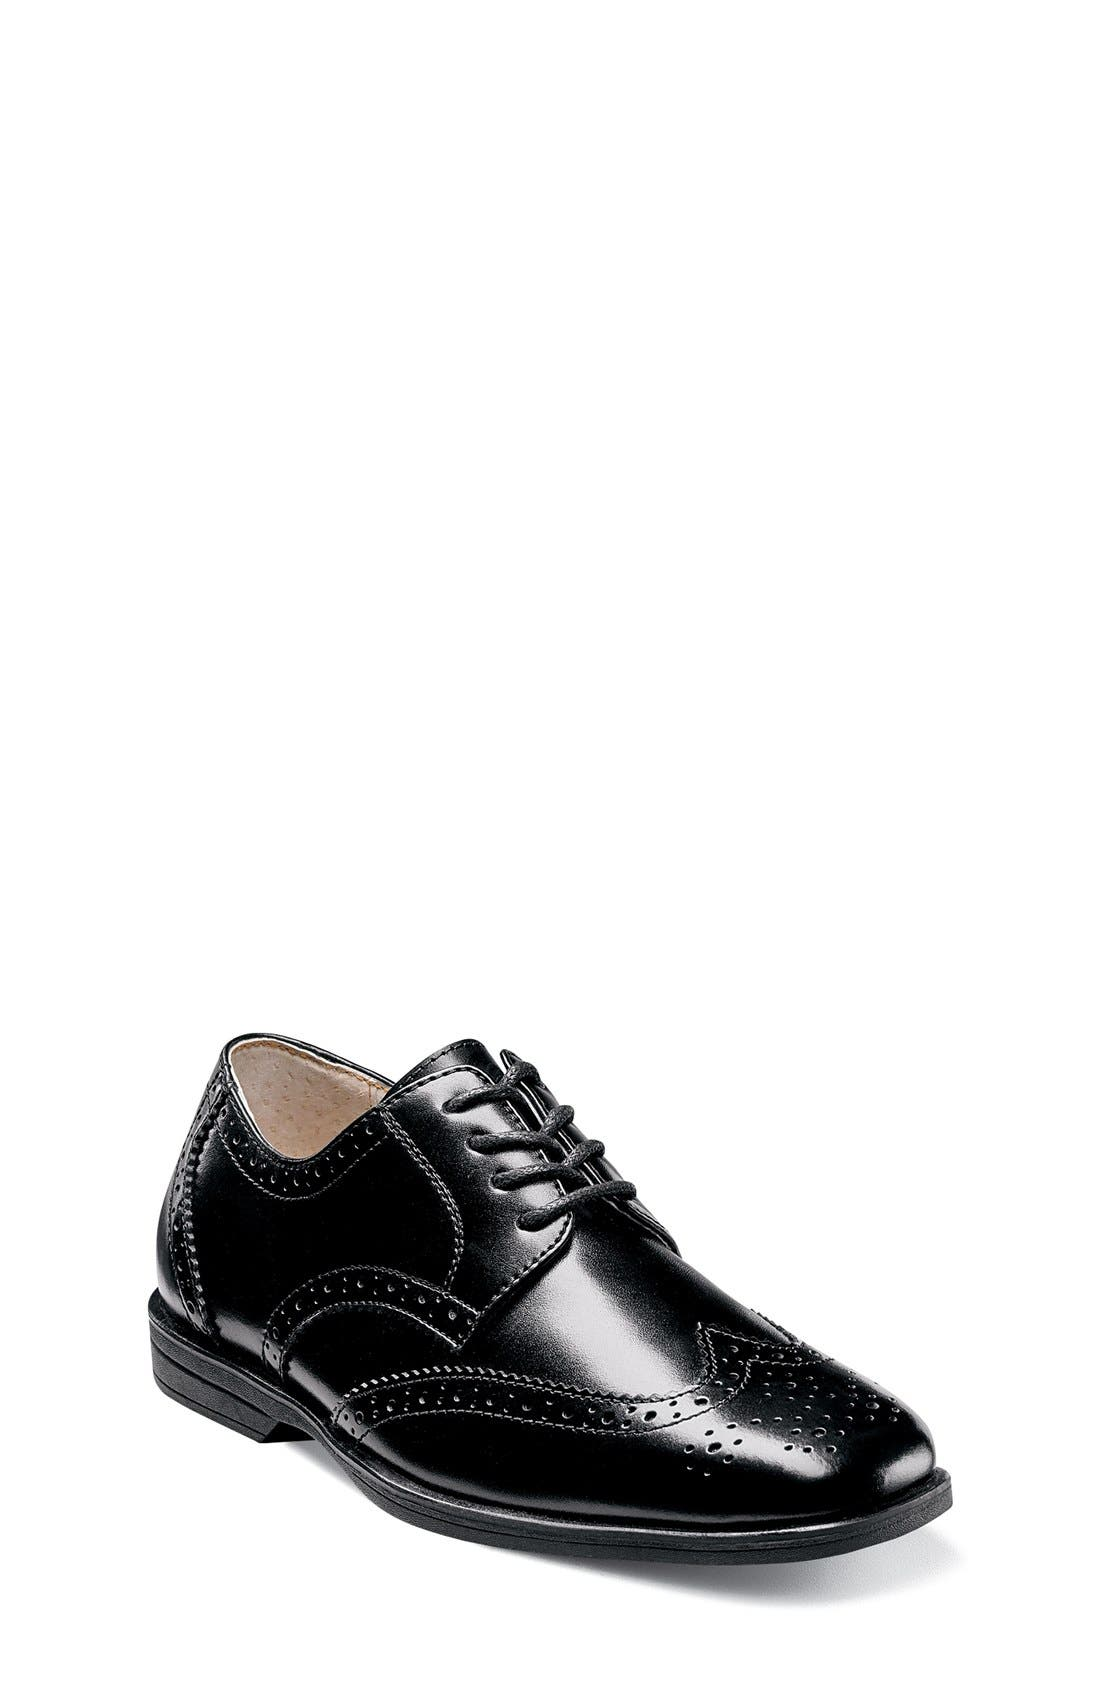 FLORSHEIM 'Reveal' Wingtip Oxford, Main, color, BLACK LEATHER